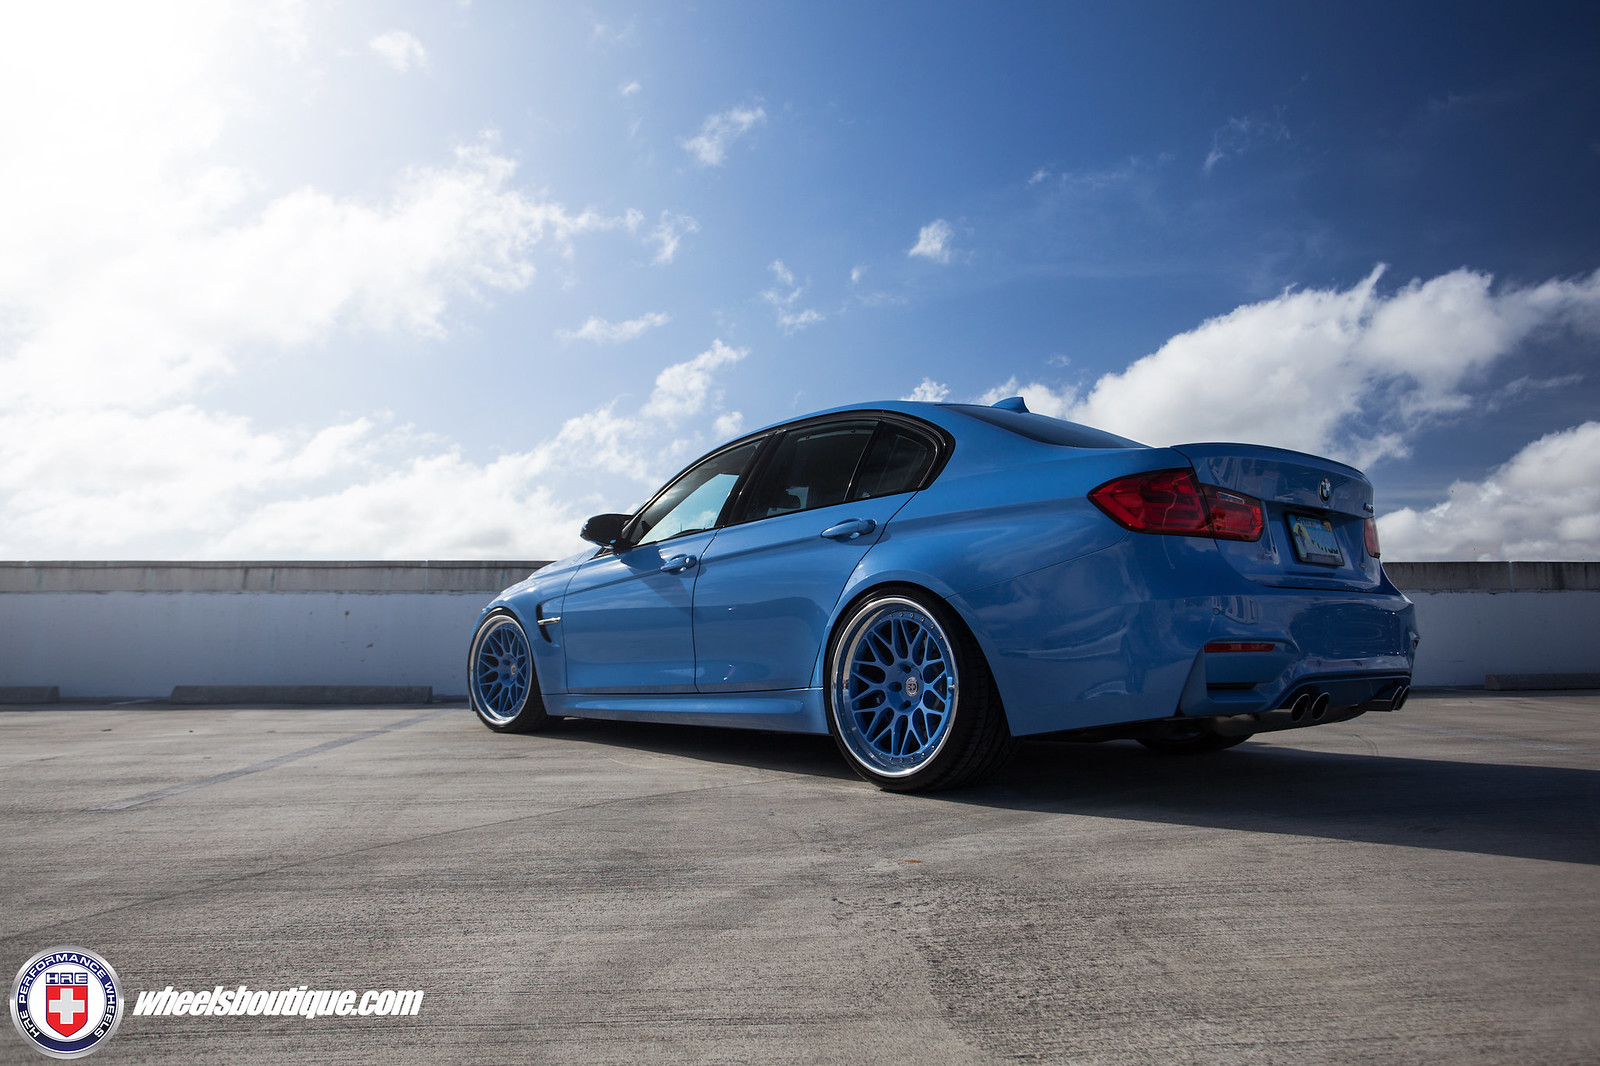 Wheels boutique gallery of exotics new this week g30 m550i on hre rs200m page 7